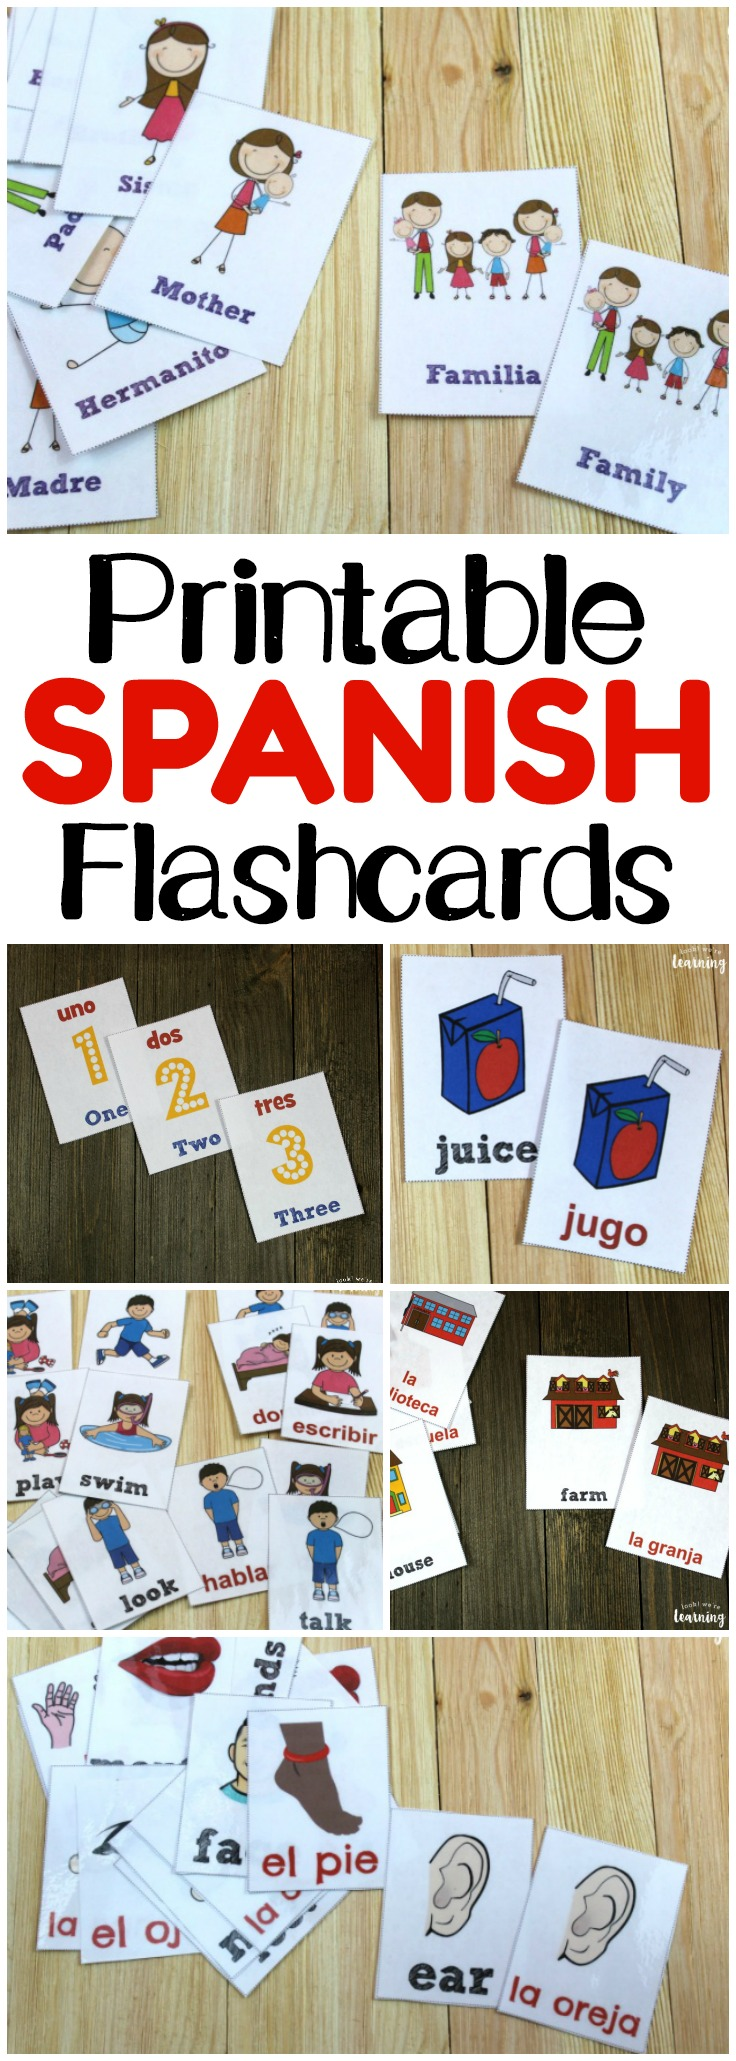 photograph about Spanish Flashcards Printable referred to as Printable Spanish Flashcards - Seem! Had been Finding out!